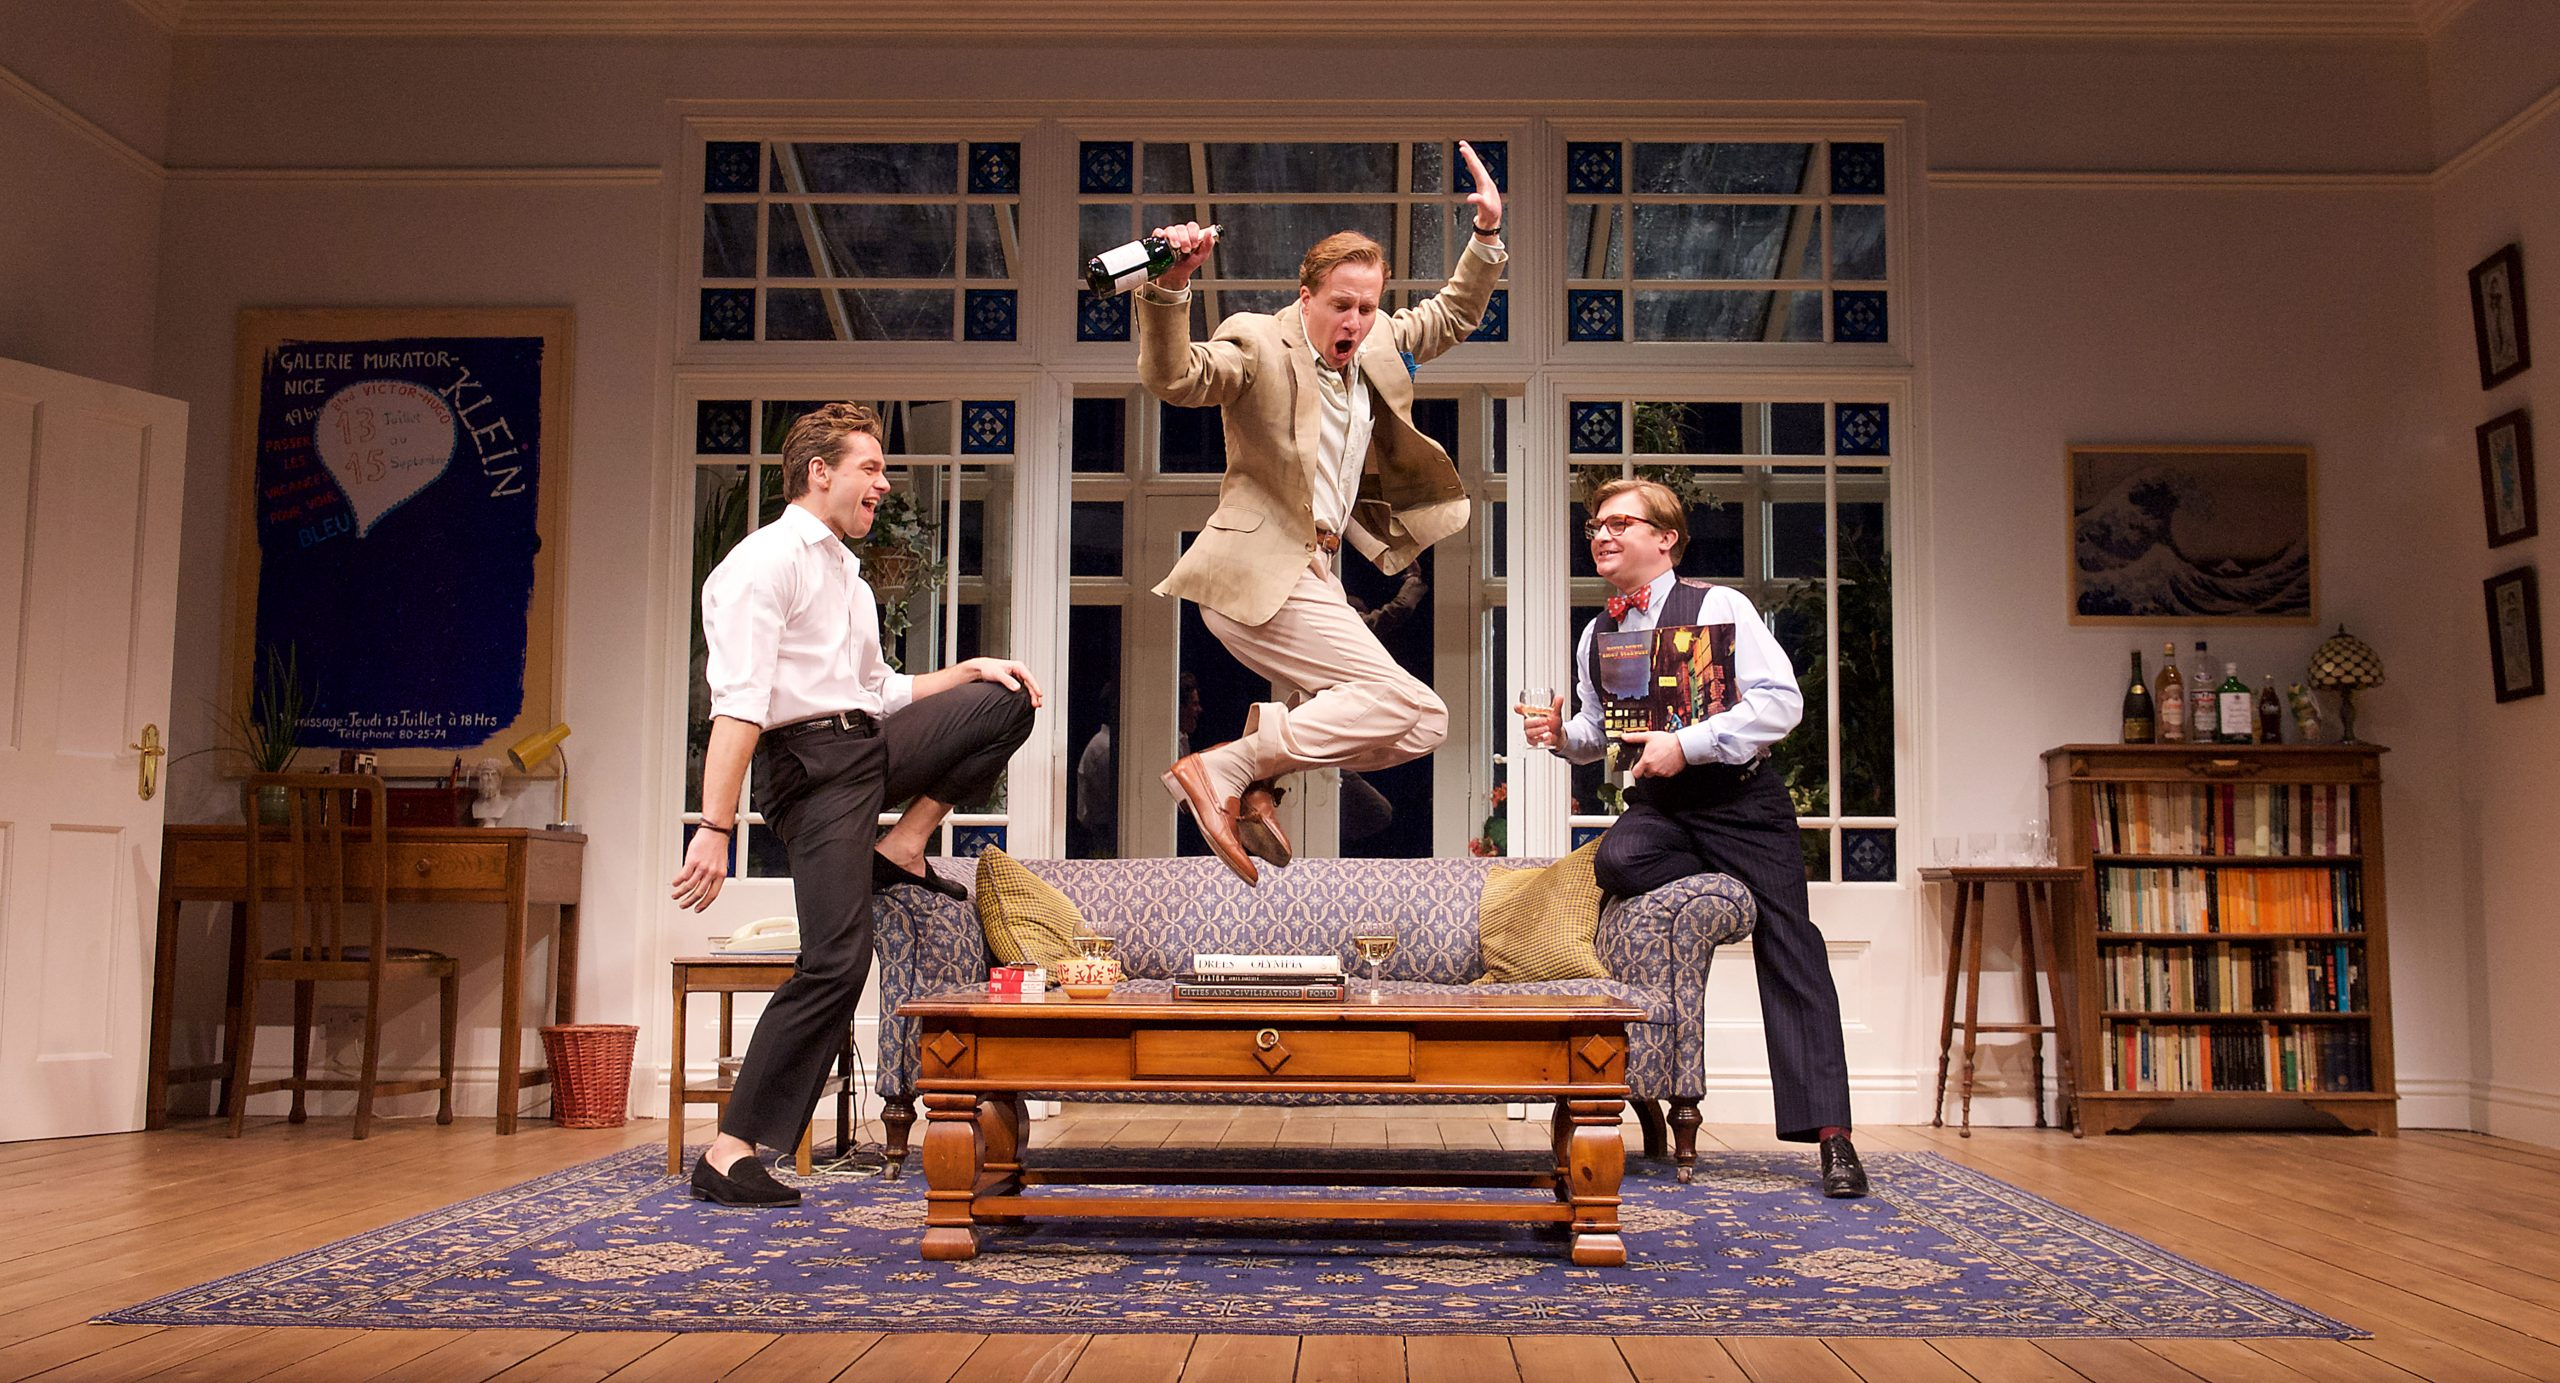 My Night with Reg  by Kevin Elyot  at the Apollo Theatre, London, Great Britain  Press photocall 20th January 2015   Julian Ovenden as John Geoffrey Streatfeild as Daniel - jumping  Jonathan Broadbent as Guy     Photograph by Elliott Franks  Image licensed to Elliott Franks Photography Services